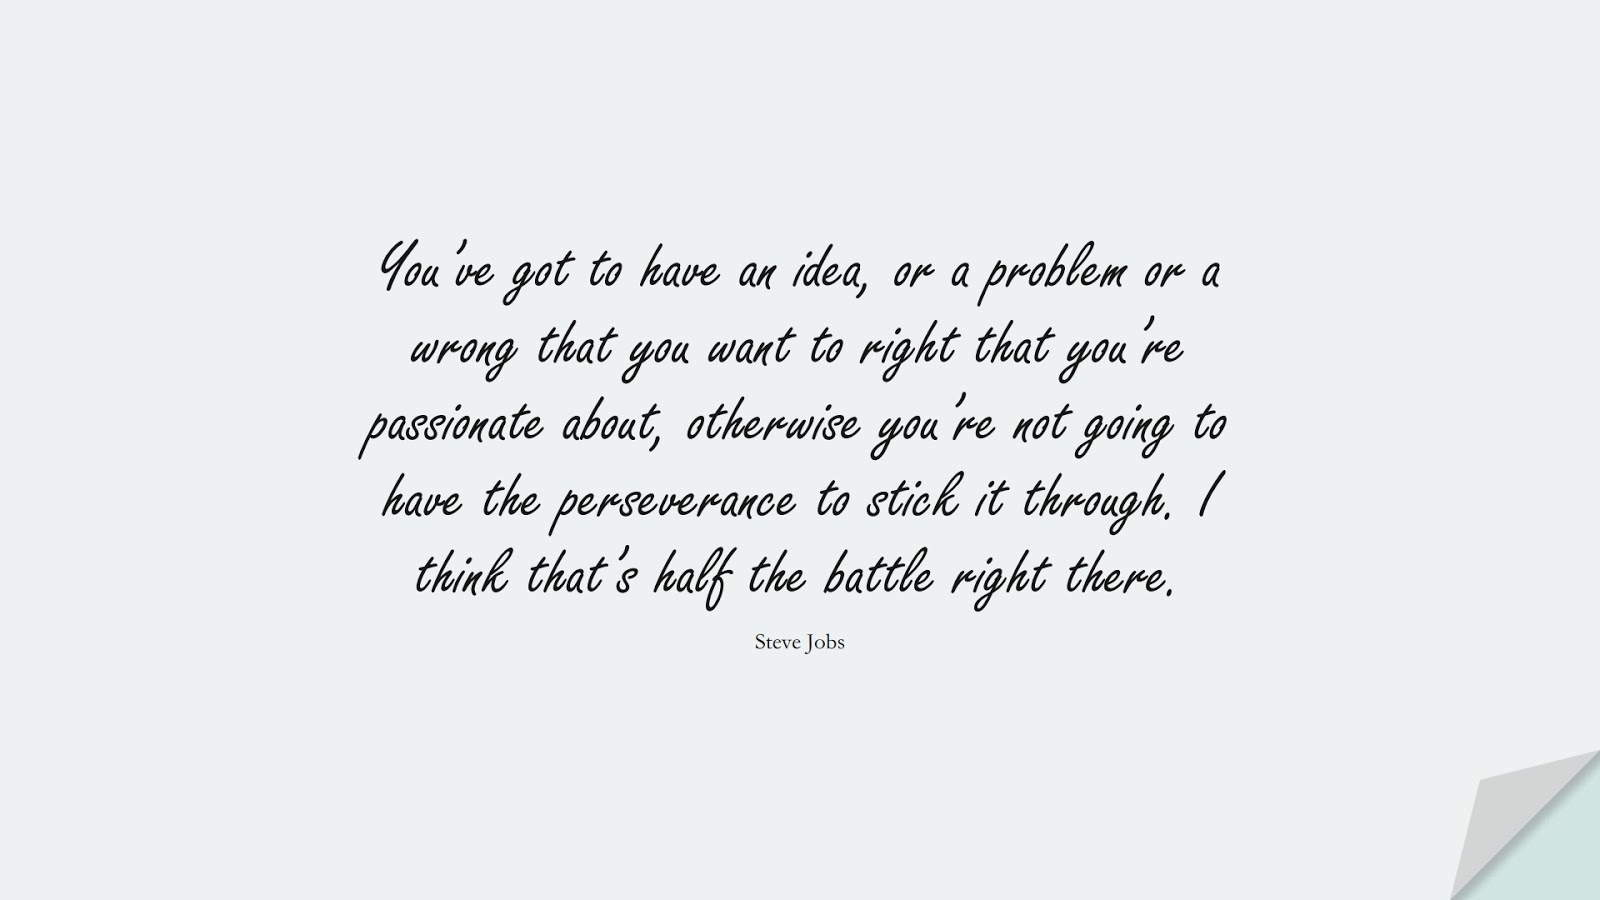 You've got to have an idea, or a problem or a wrong that you want to right that you're passionate about, otherwise you're not going to have the perseverance to stick it through. I think that's half the battle right there. (Steve Jobs);  #SteveJobsQuotes